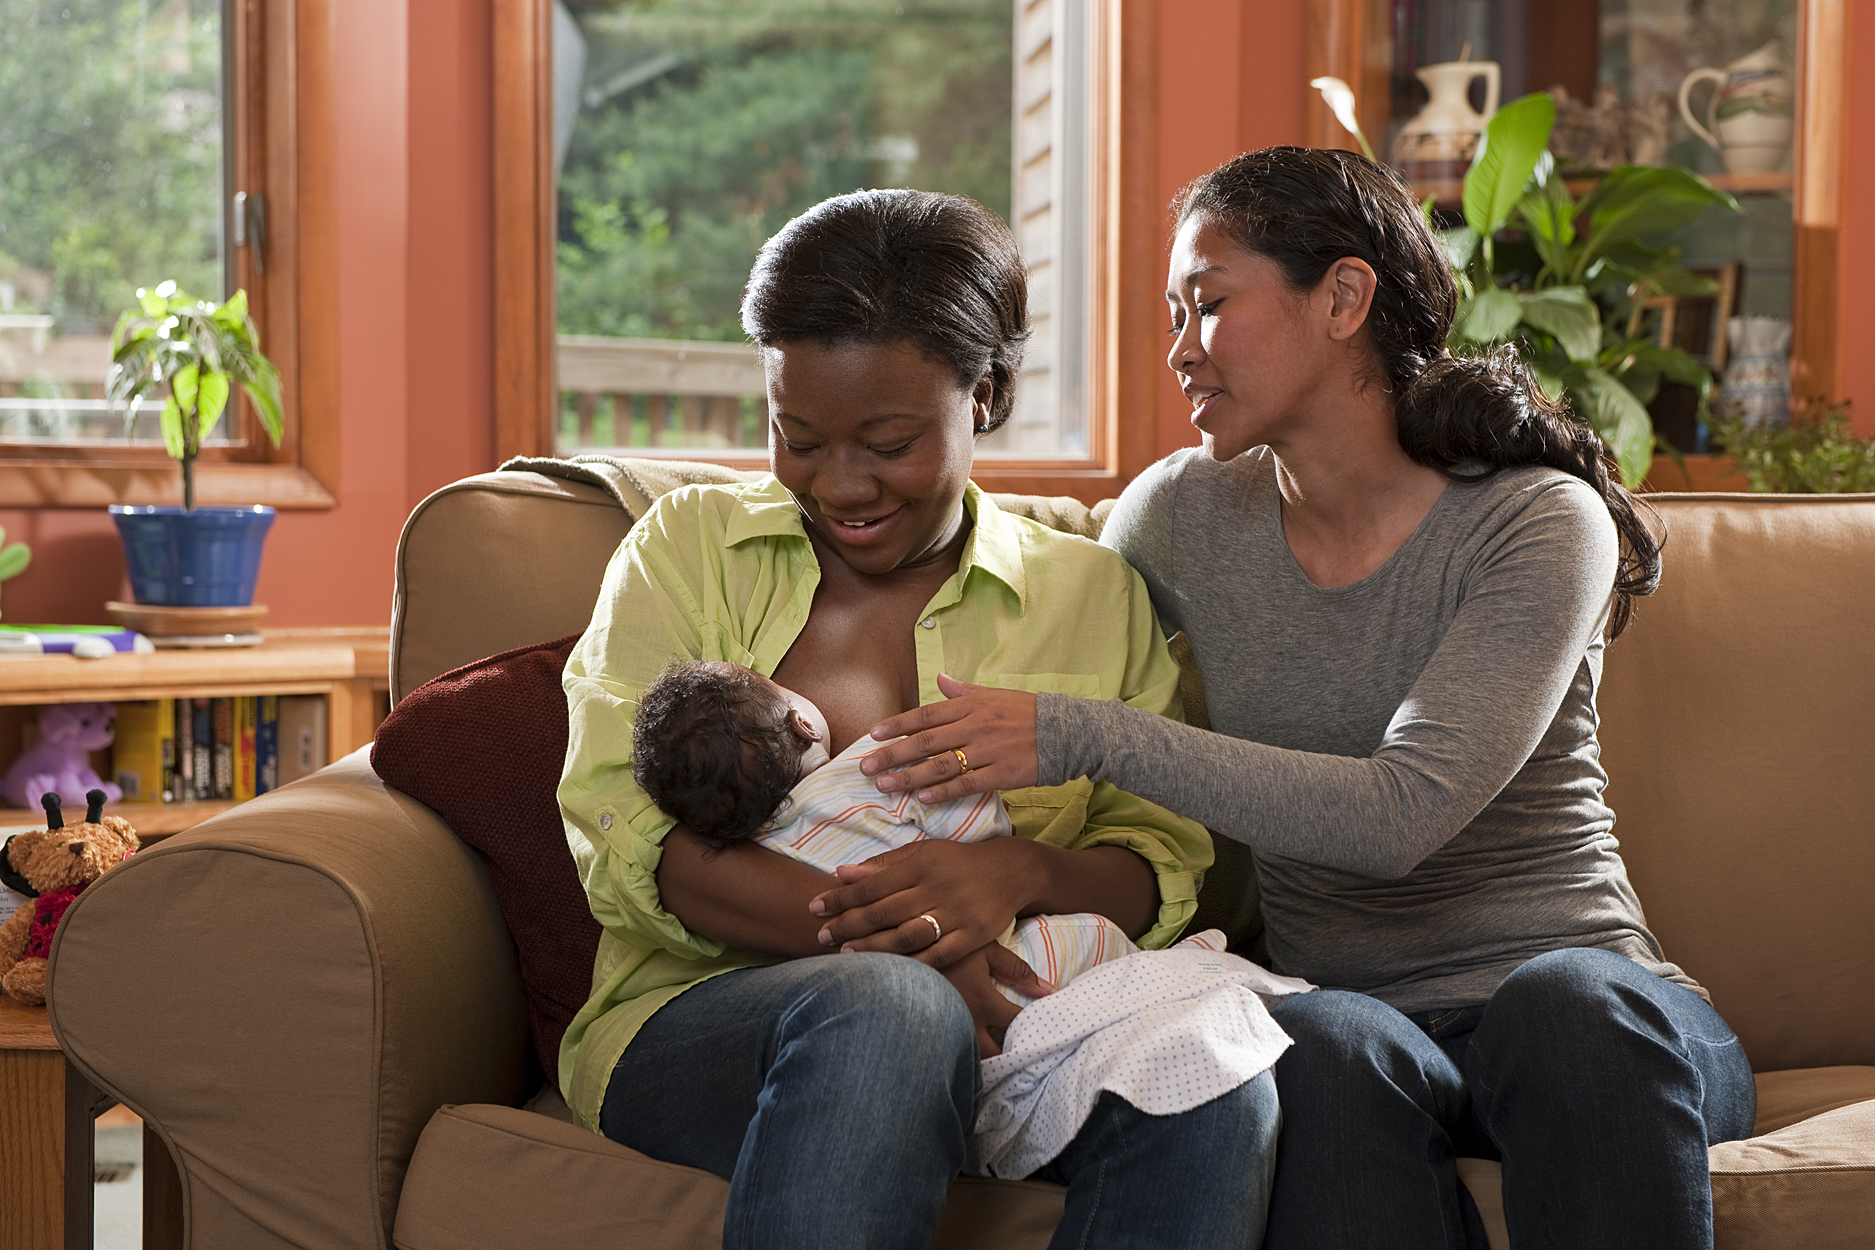 Breastfeeding counselor helping new mother breastfeed